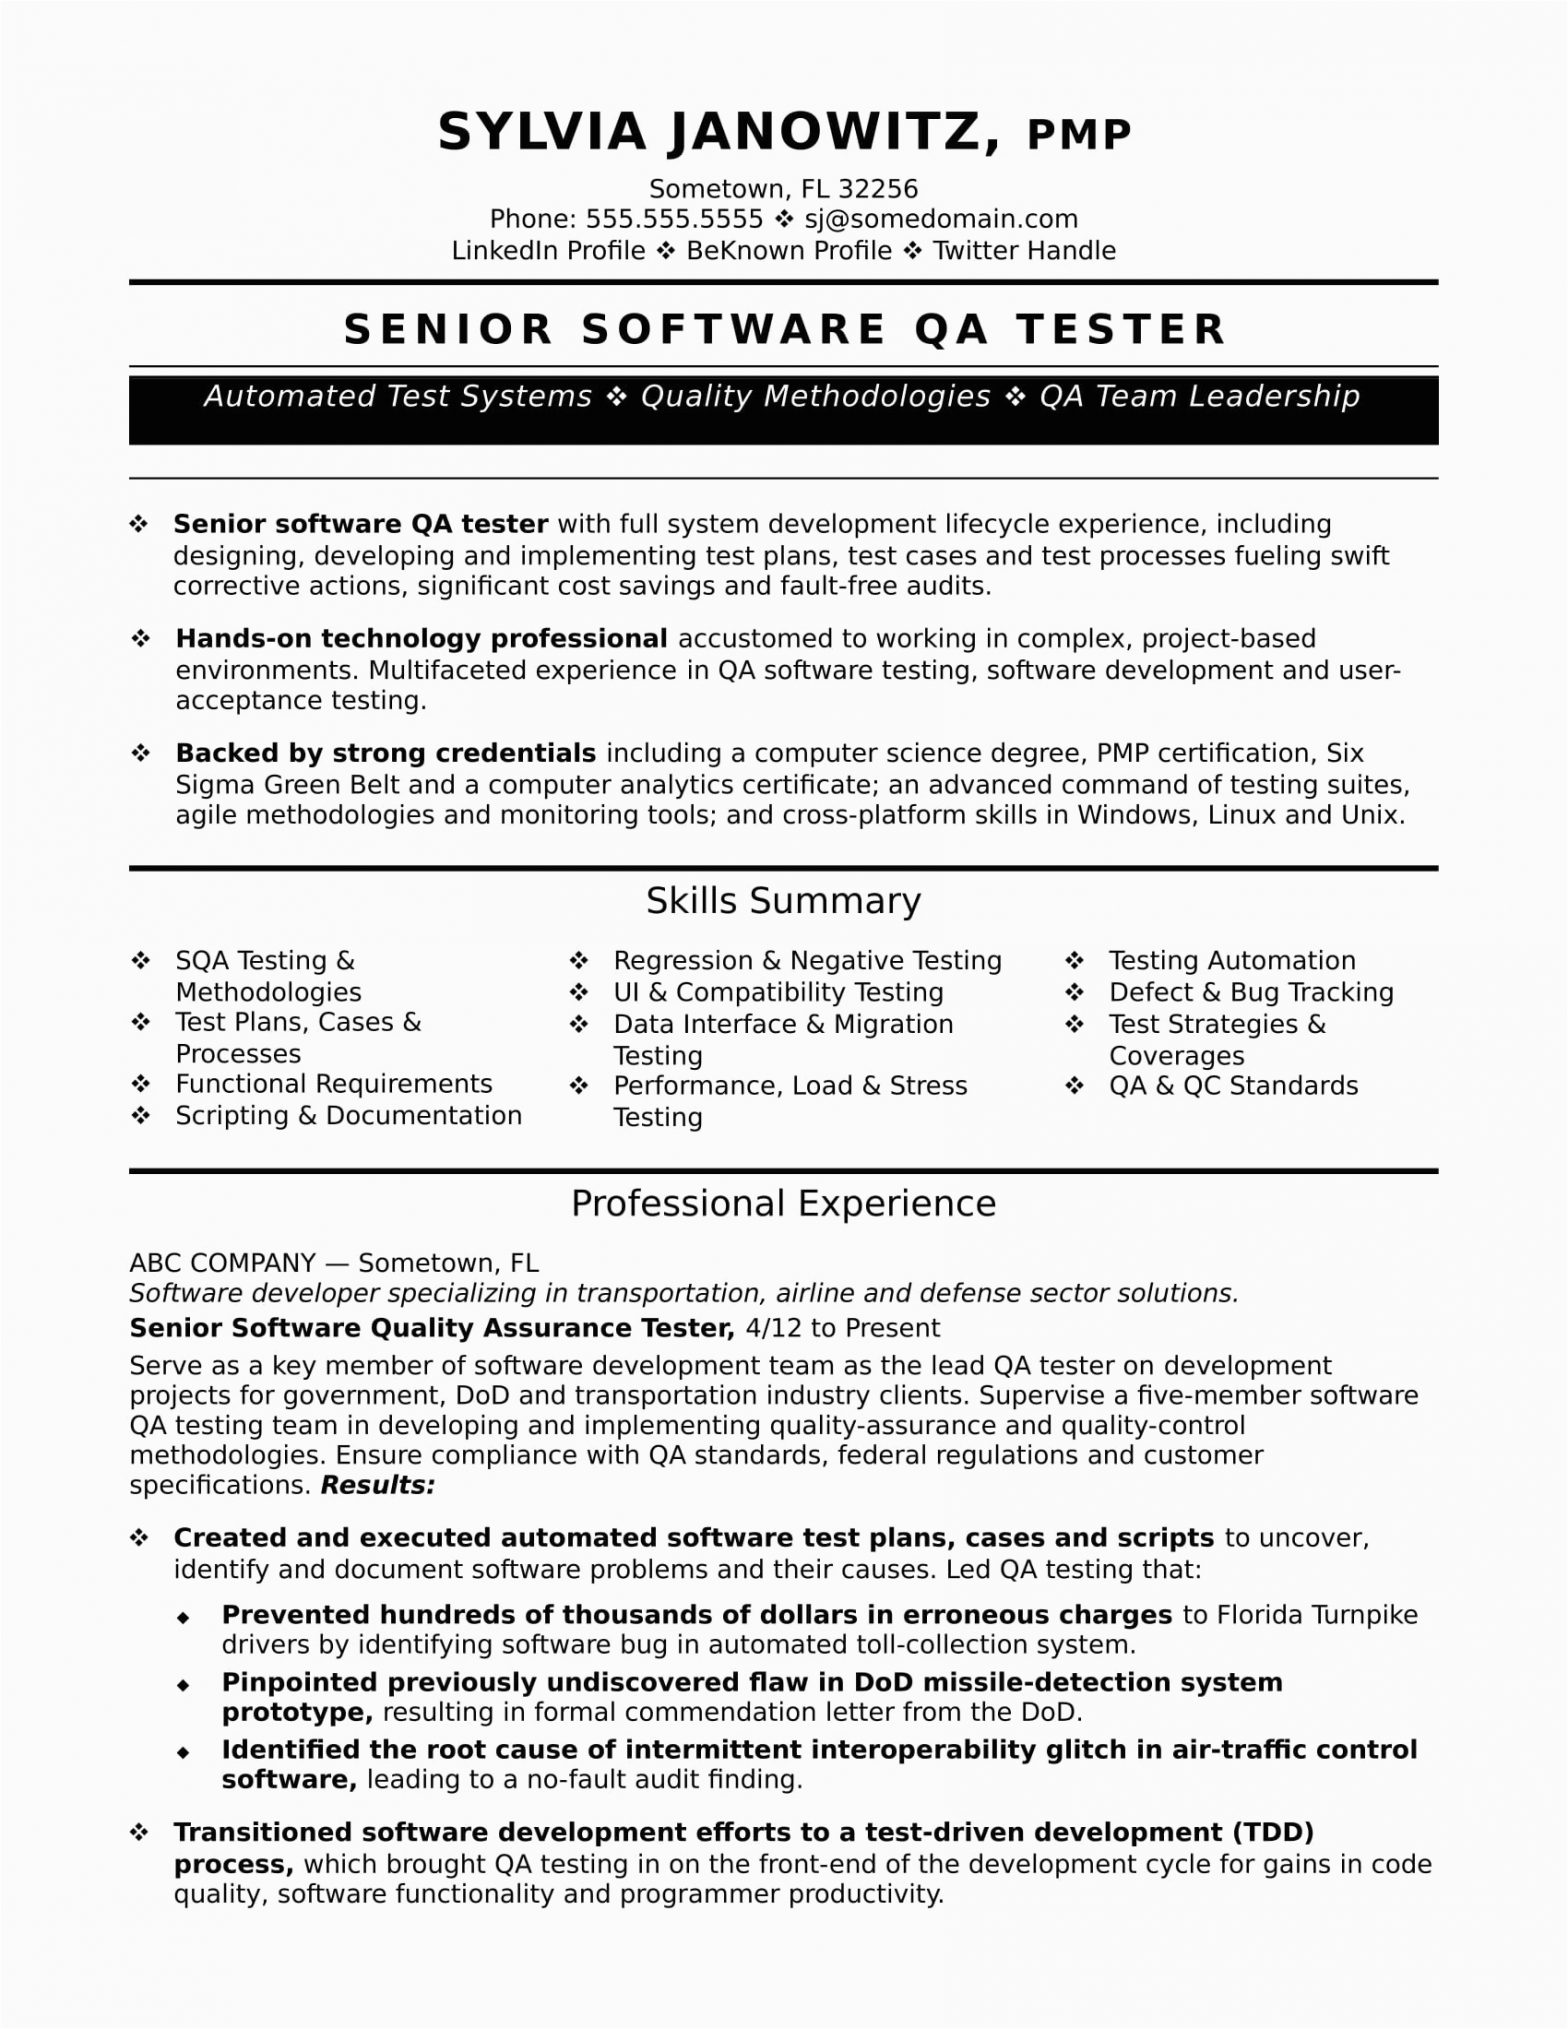 Sample Resume Of A software Tester Experienced Qa software Tester Resume Sample